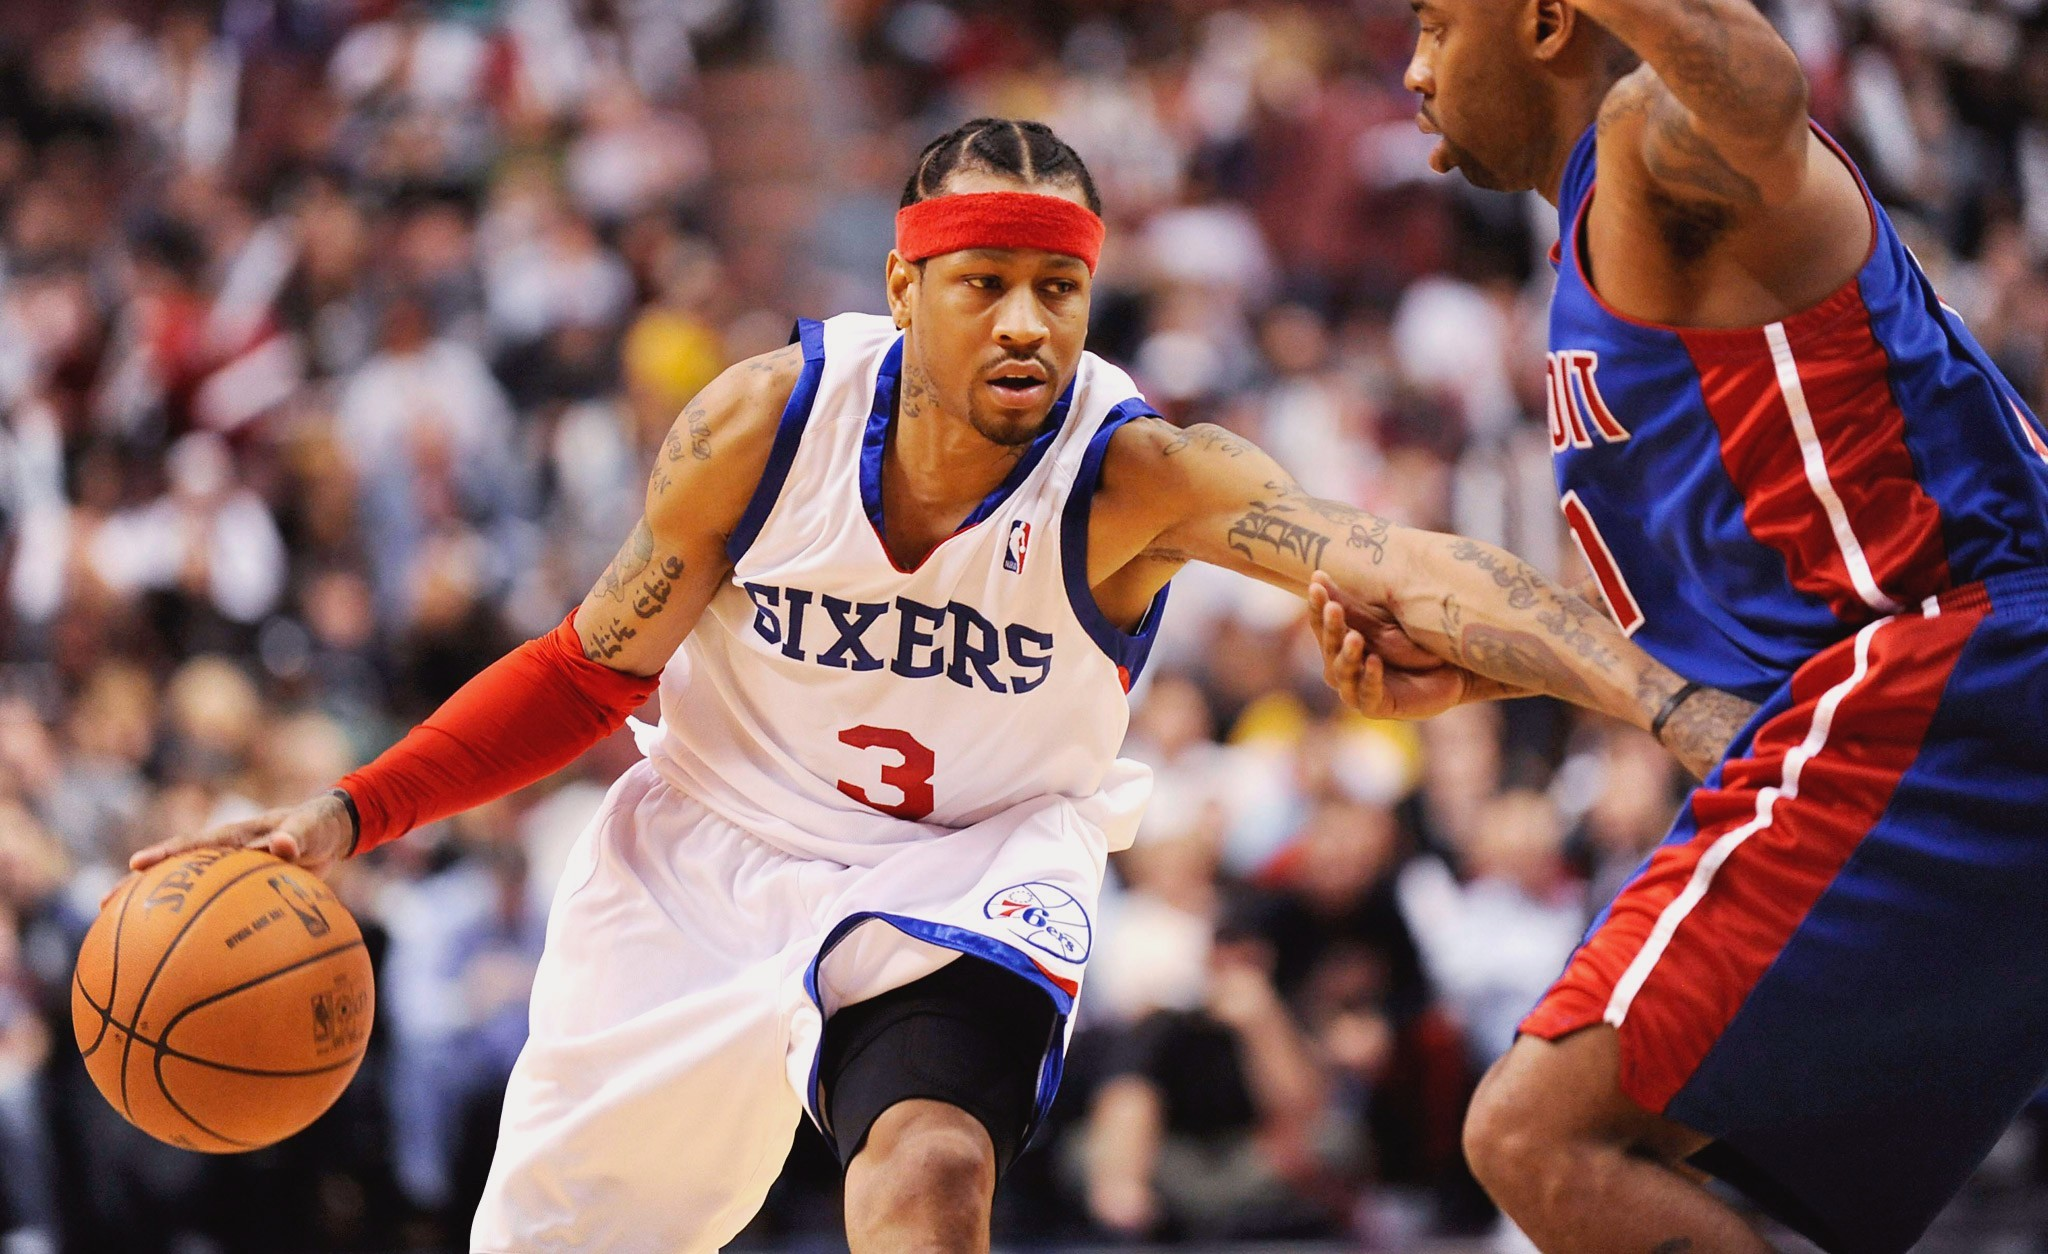 Allen Iverson Wallpaper Hd 69 Images